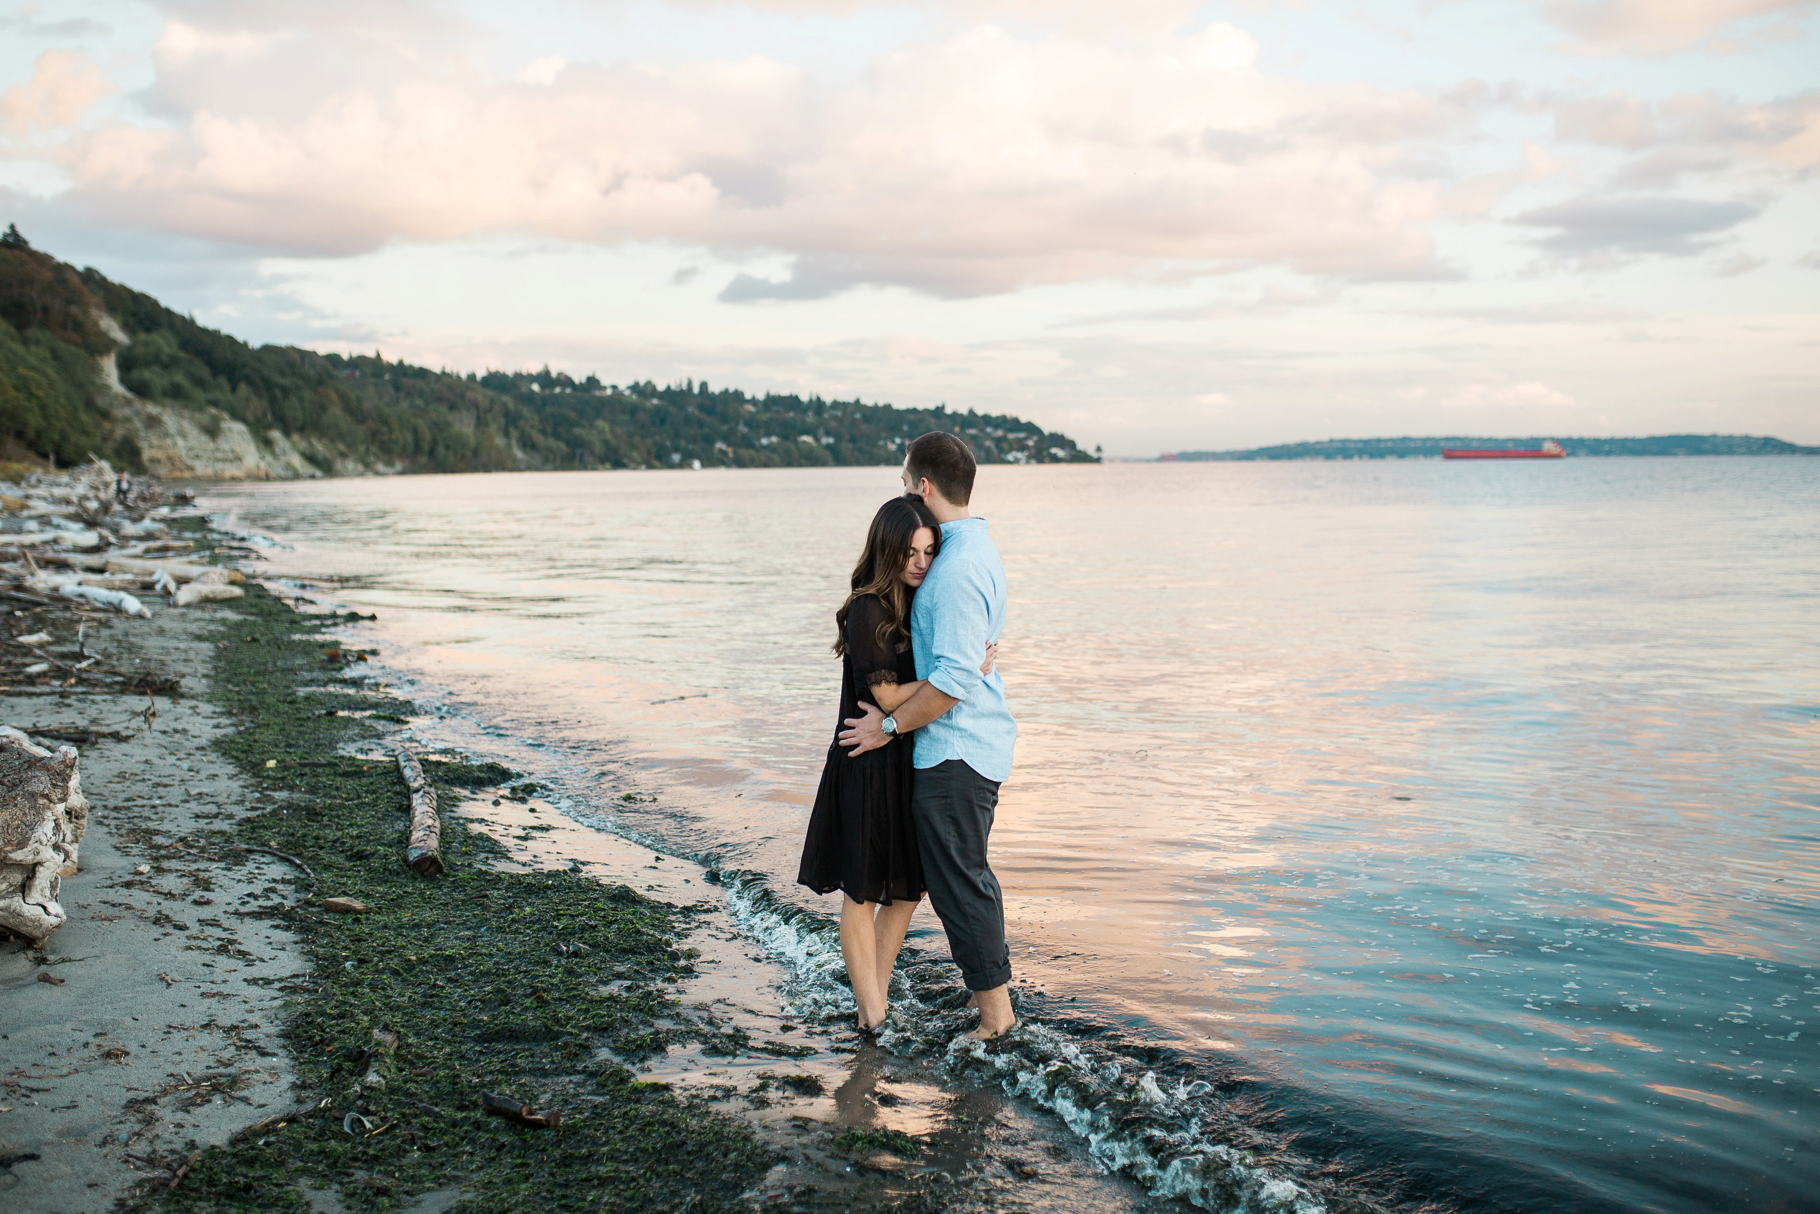 Discovery-Park-Seattle-Engagment-Photographer-Wedding-Photography-by-Betty-Elaine_0018